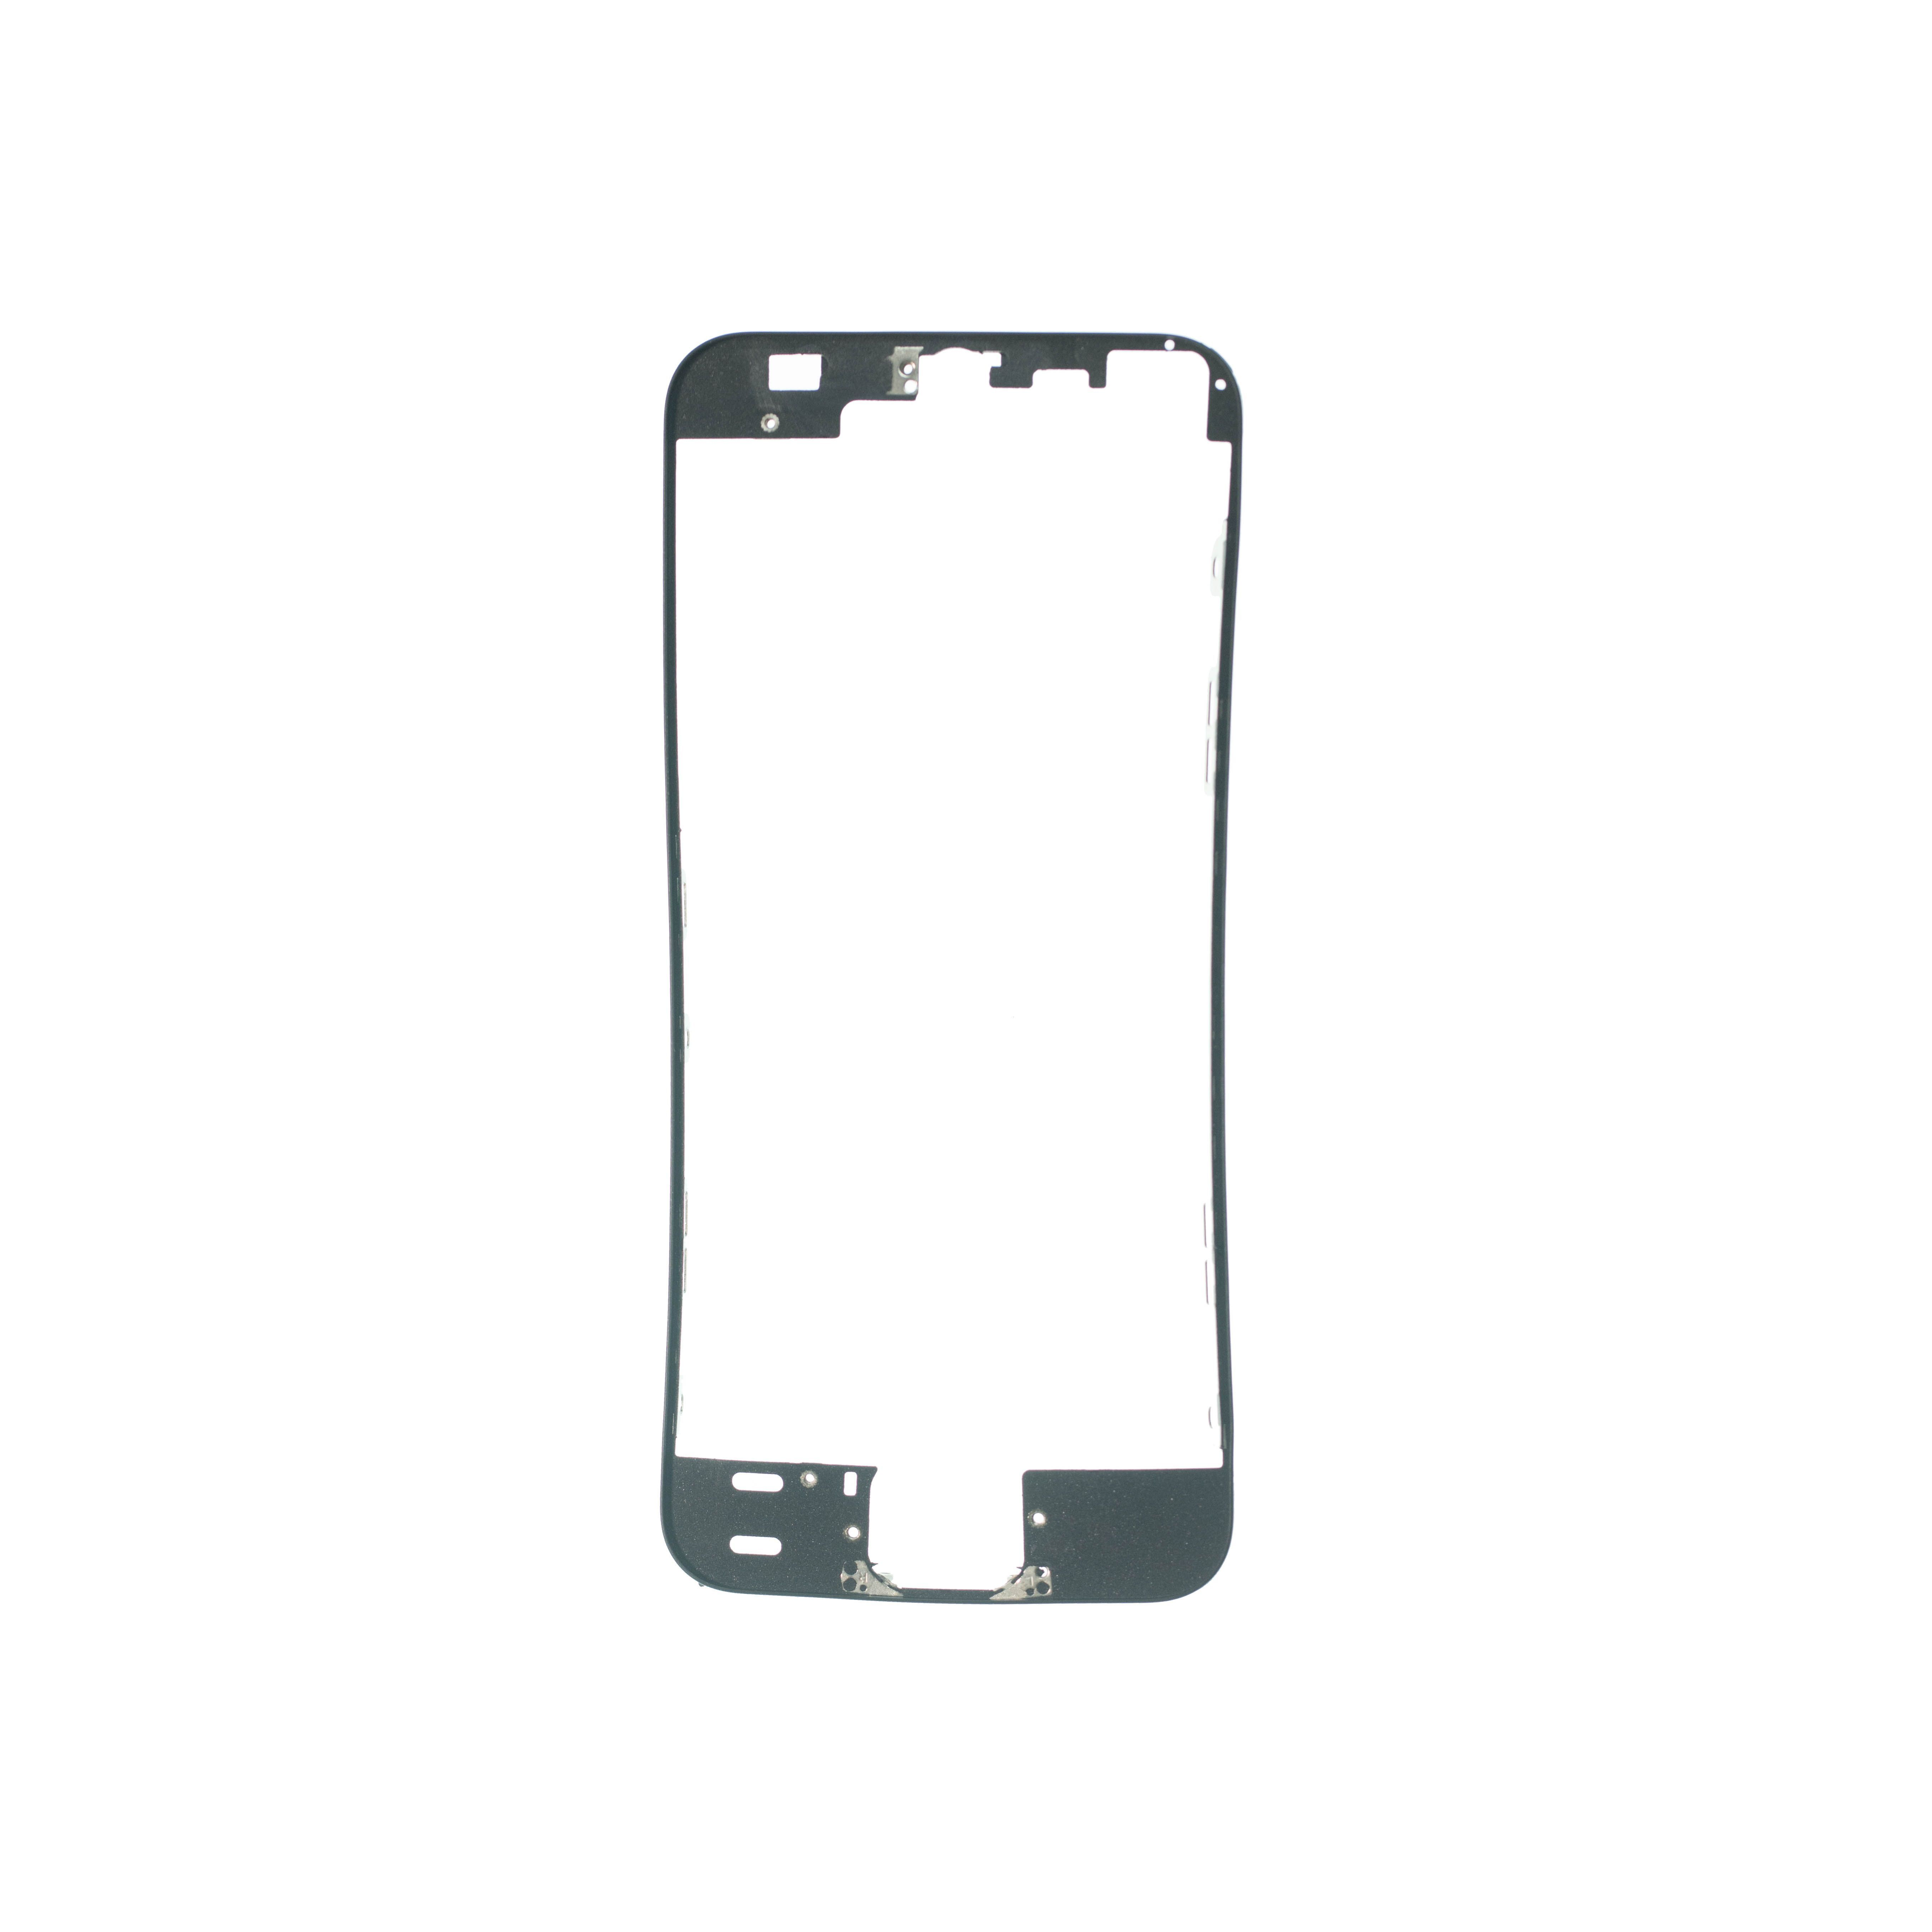 Front Frame for use with iPhone 5S, Black